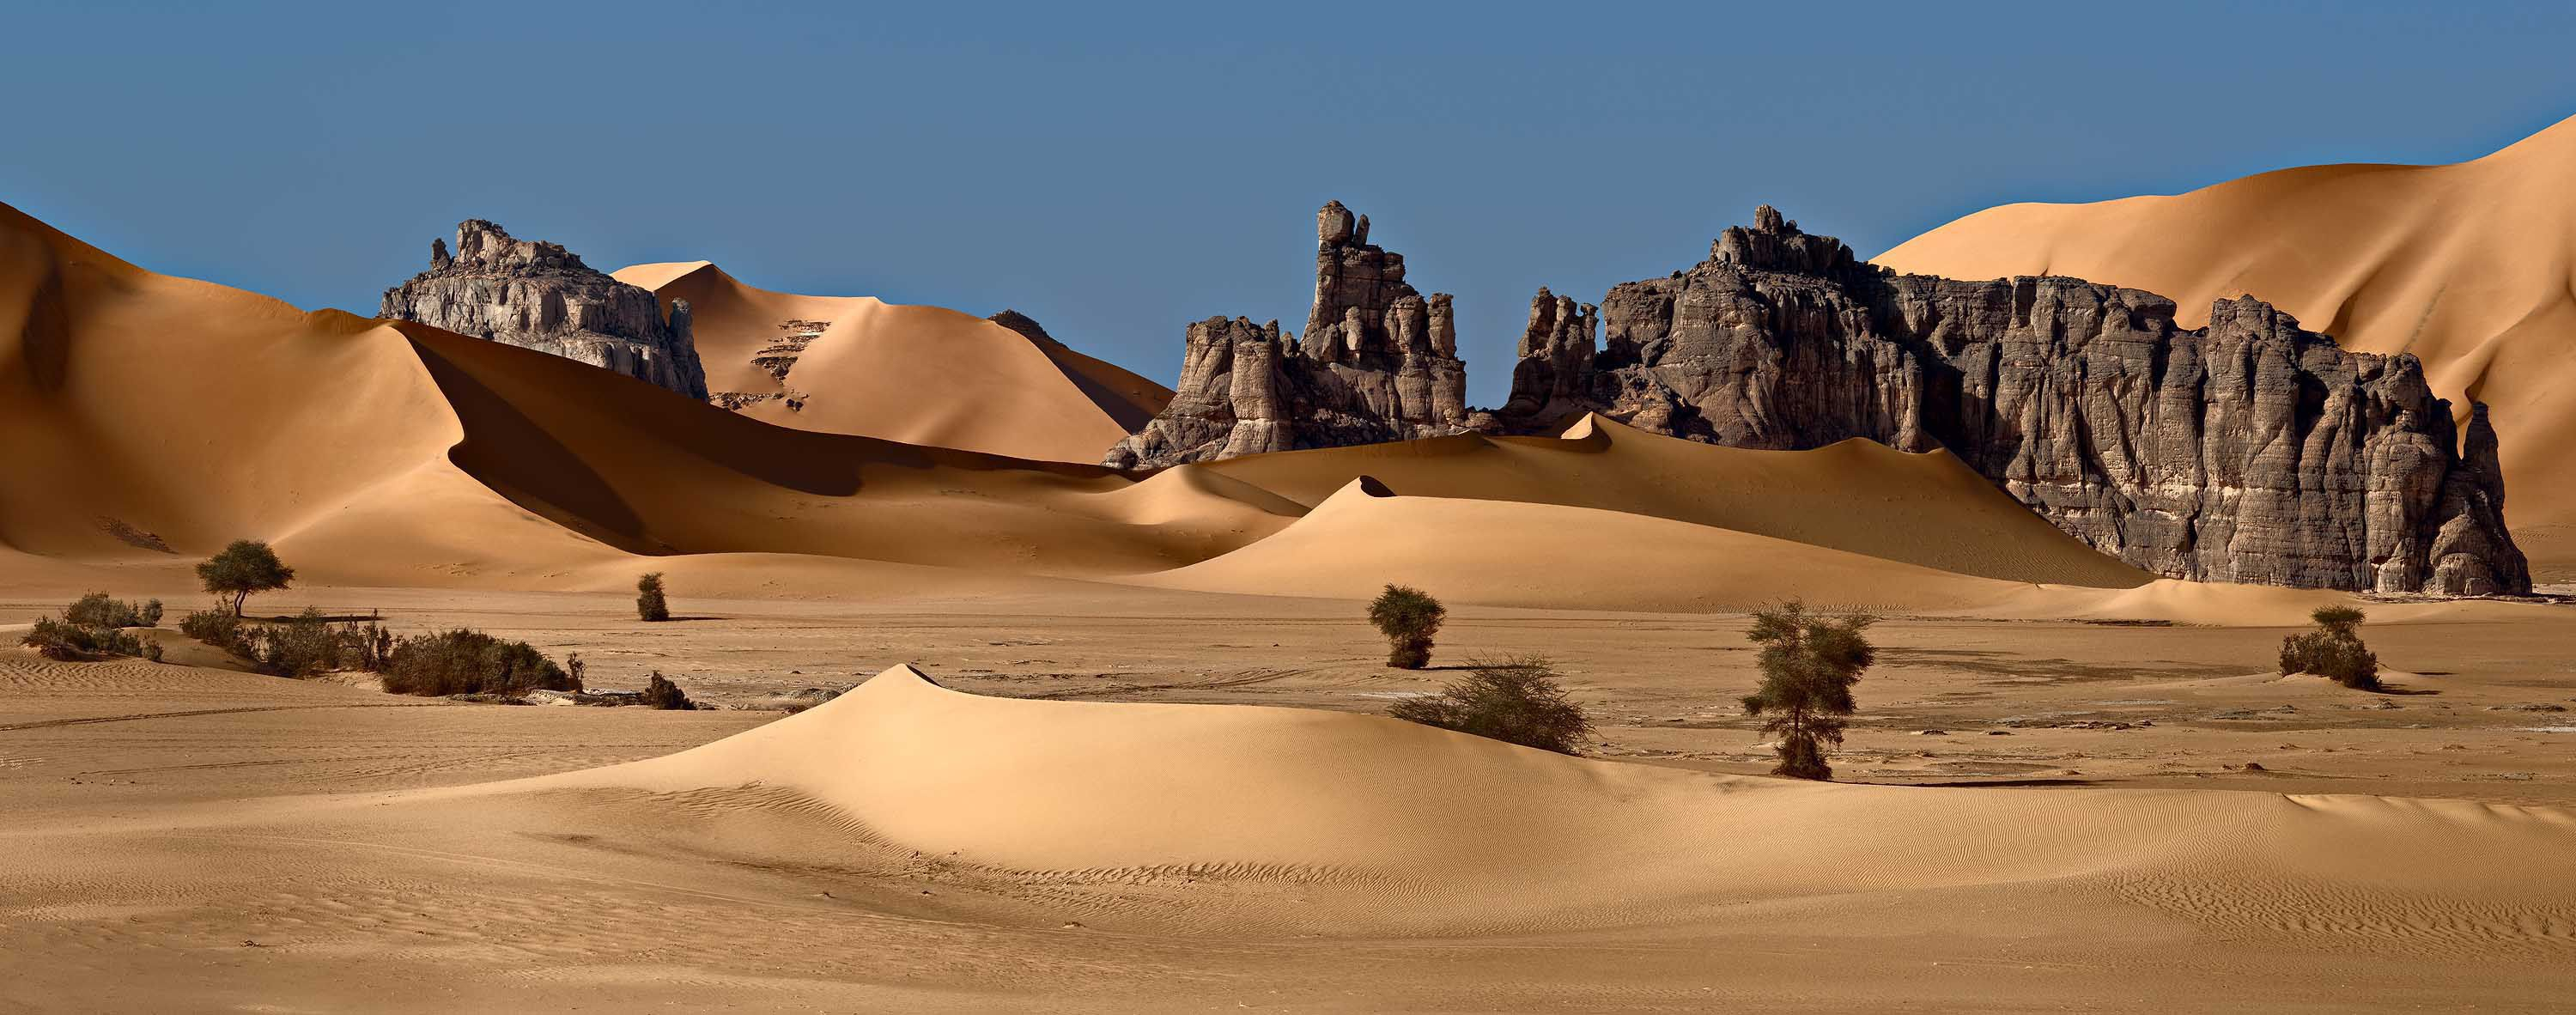 Wind Cathedral Namibia Wallpapers Hd